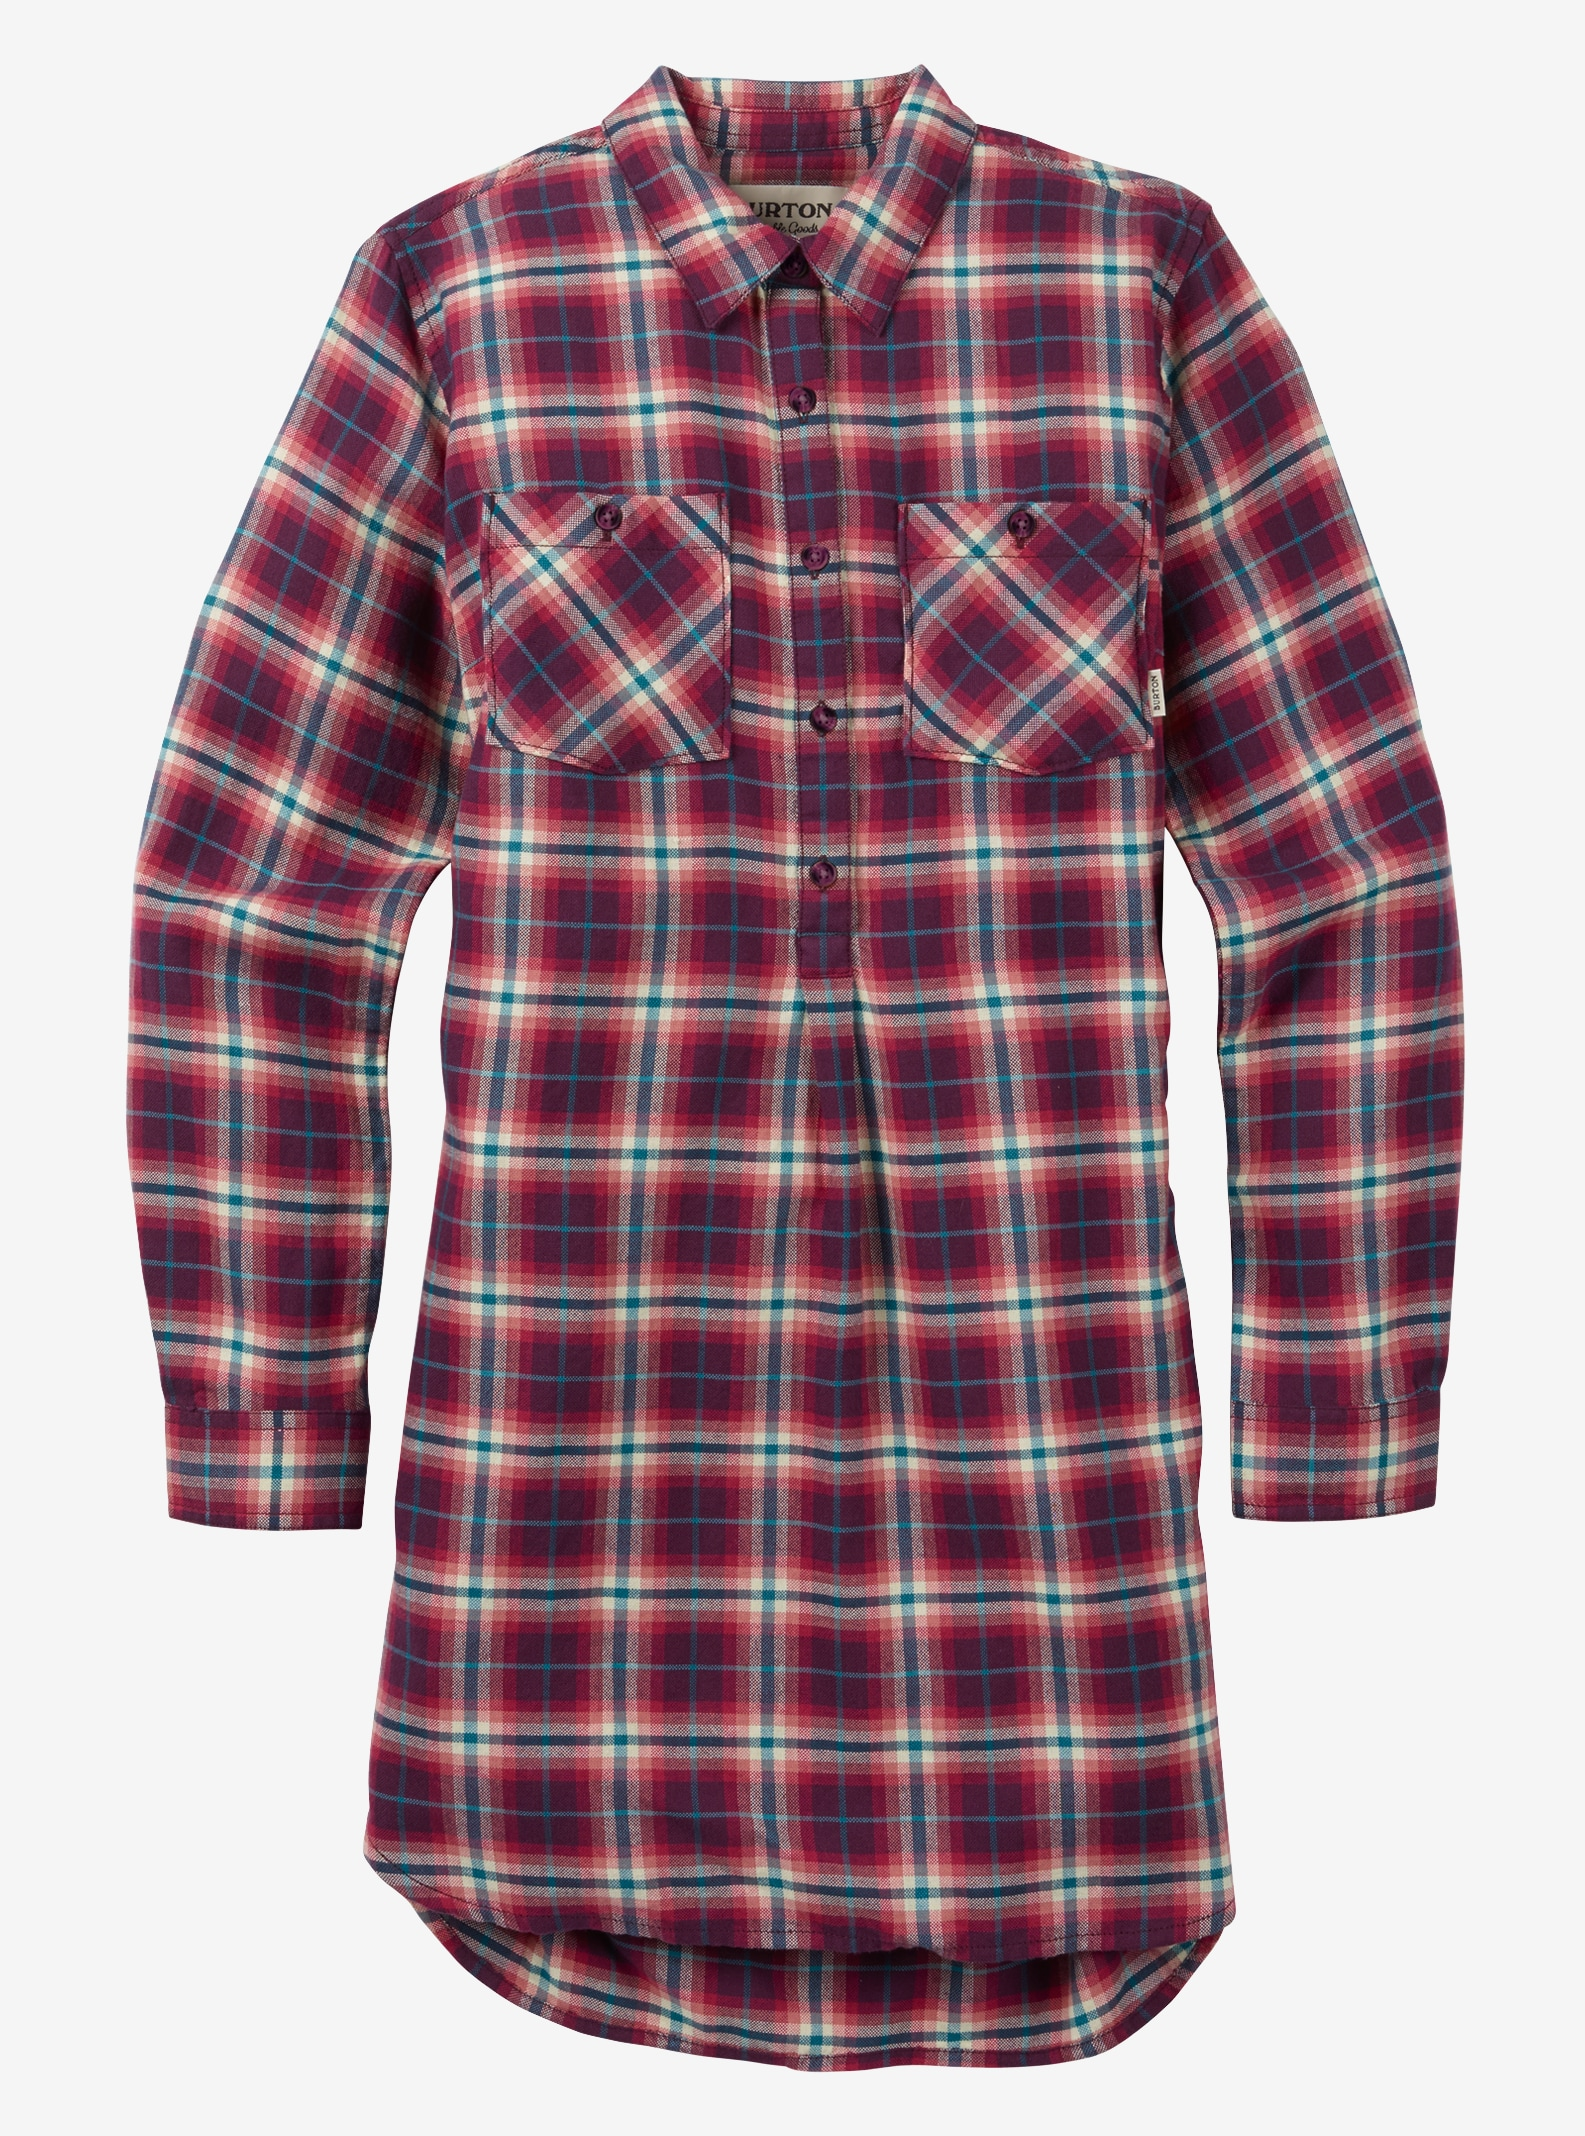 Women's Burton Grace Flannel Tunic shown in Anemone Haze Plaid